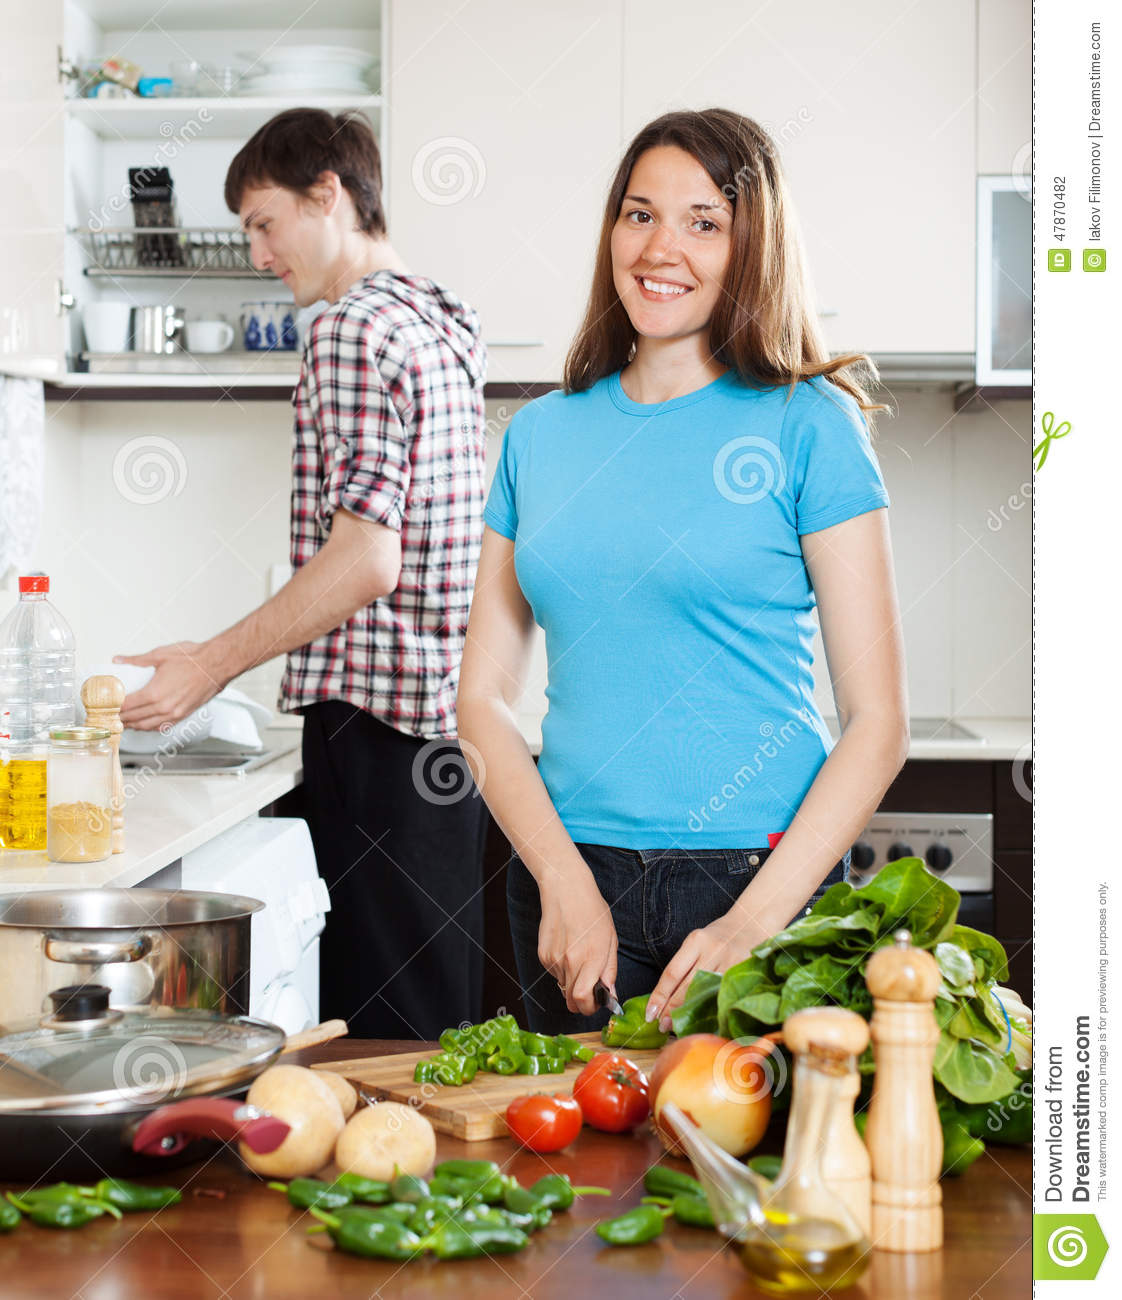 Women Kitchen: Woman Cooking Food While Man Washing Dishes Stock Photo